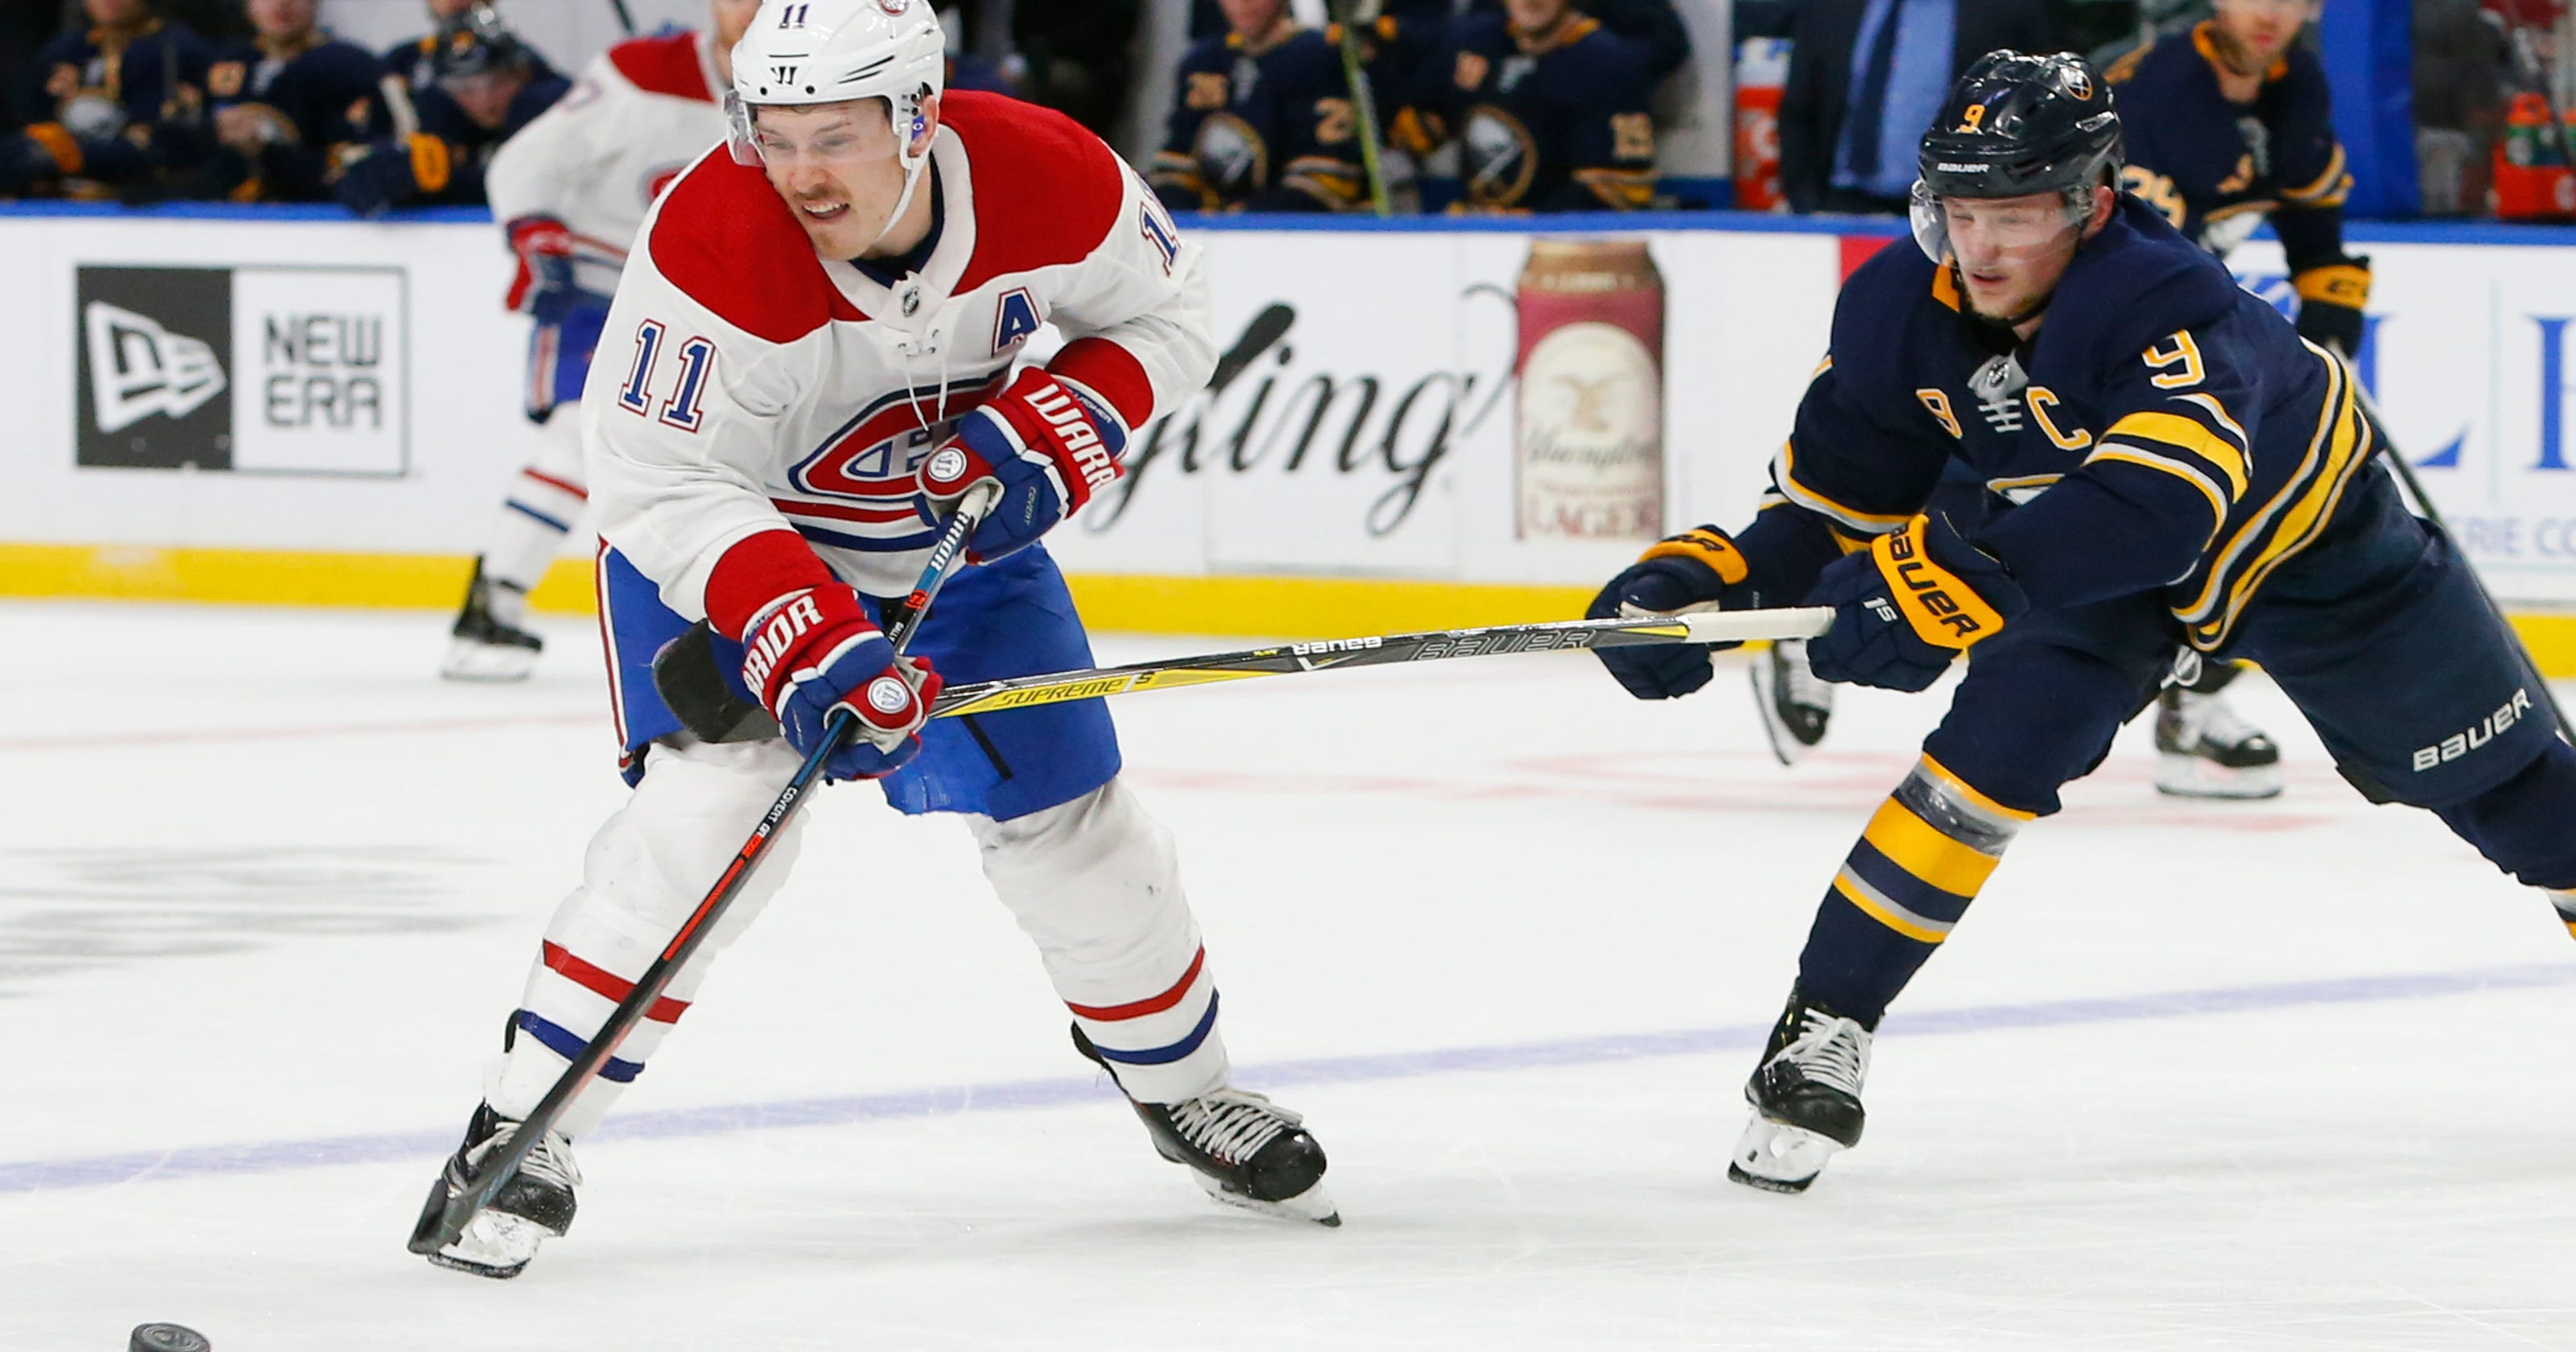 88354010cce Sabres beat Canadiens 3-2 for 8th straight win